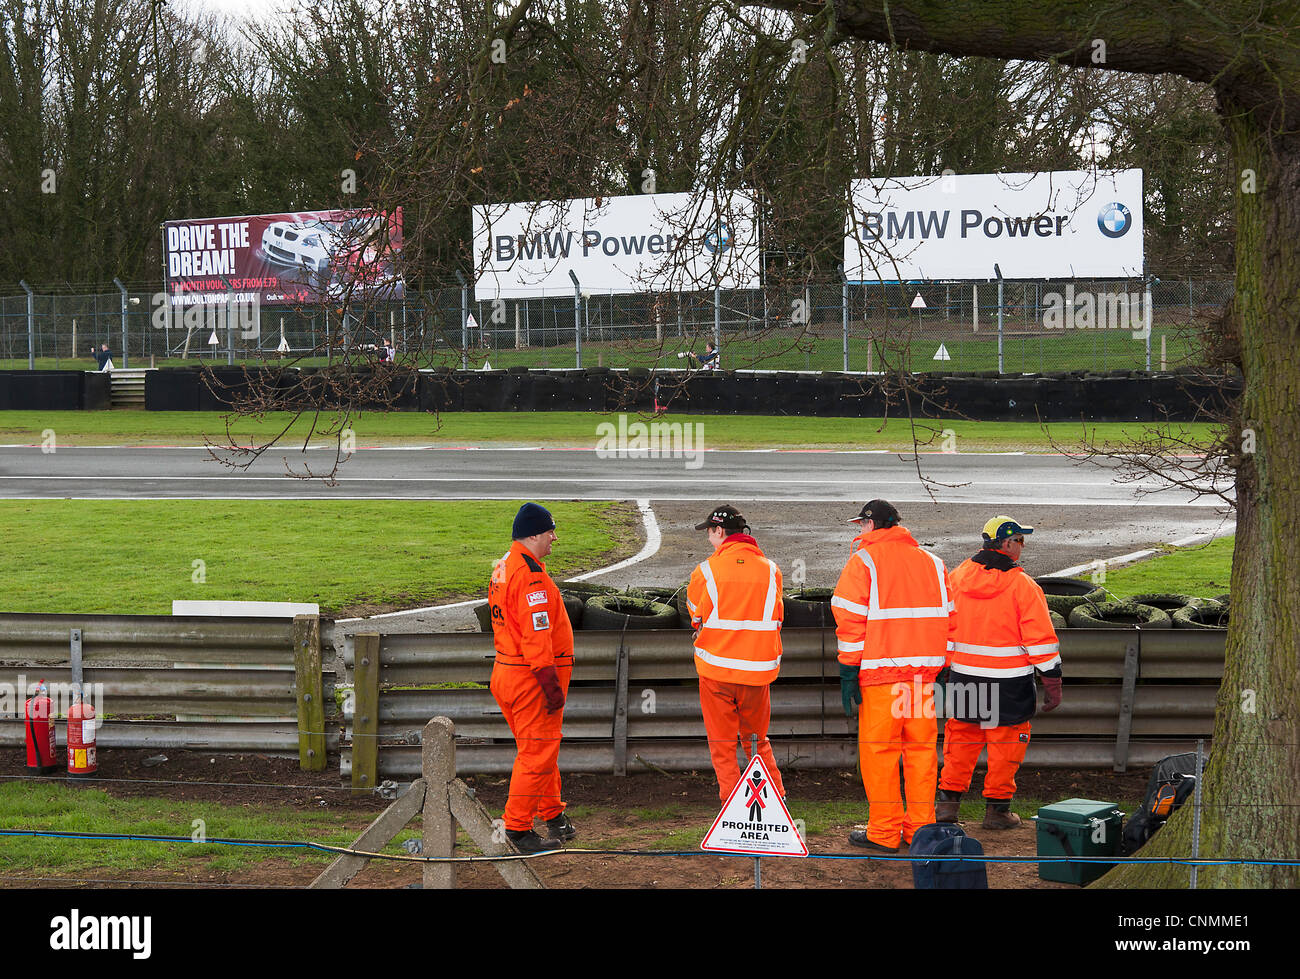 Track Marshals at Oulton Park Motor Racing Circuit Oversee Safety at an Historic Racing Car Race in Cheshire England - Stock Image